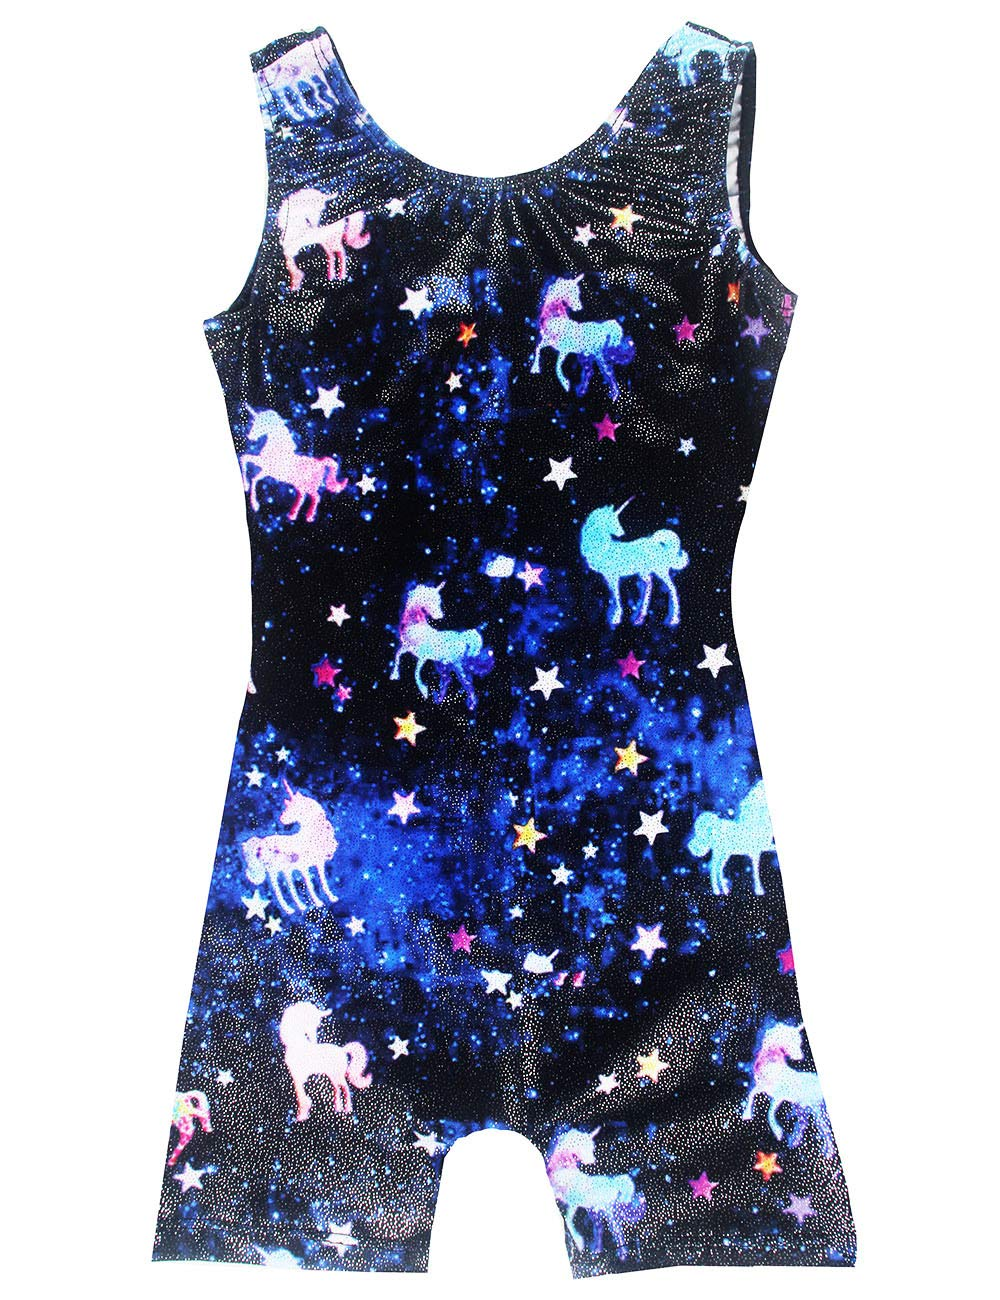 Leotards for Toddler Girls Gymnastics 2t 3t 4t Kids Sparkly Biketards unitards with shorts One-Piece Practice Outfit Unicorn Starry sky Black